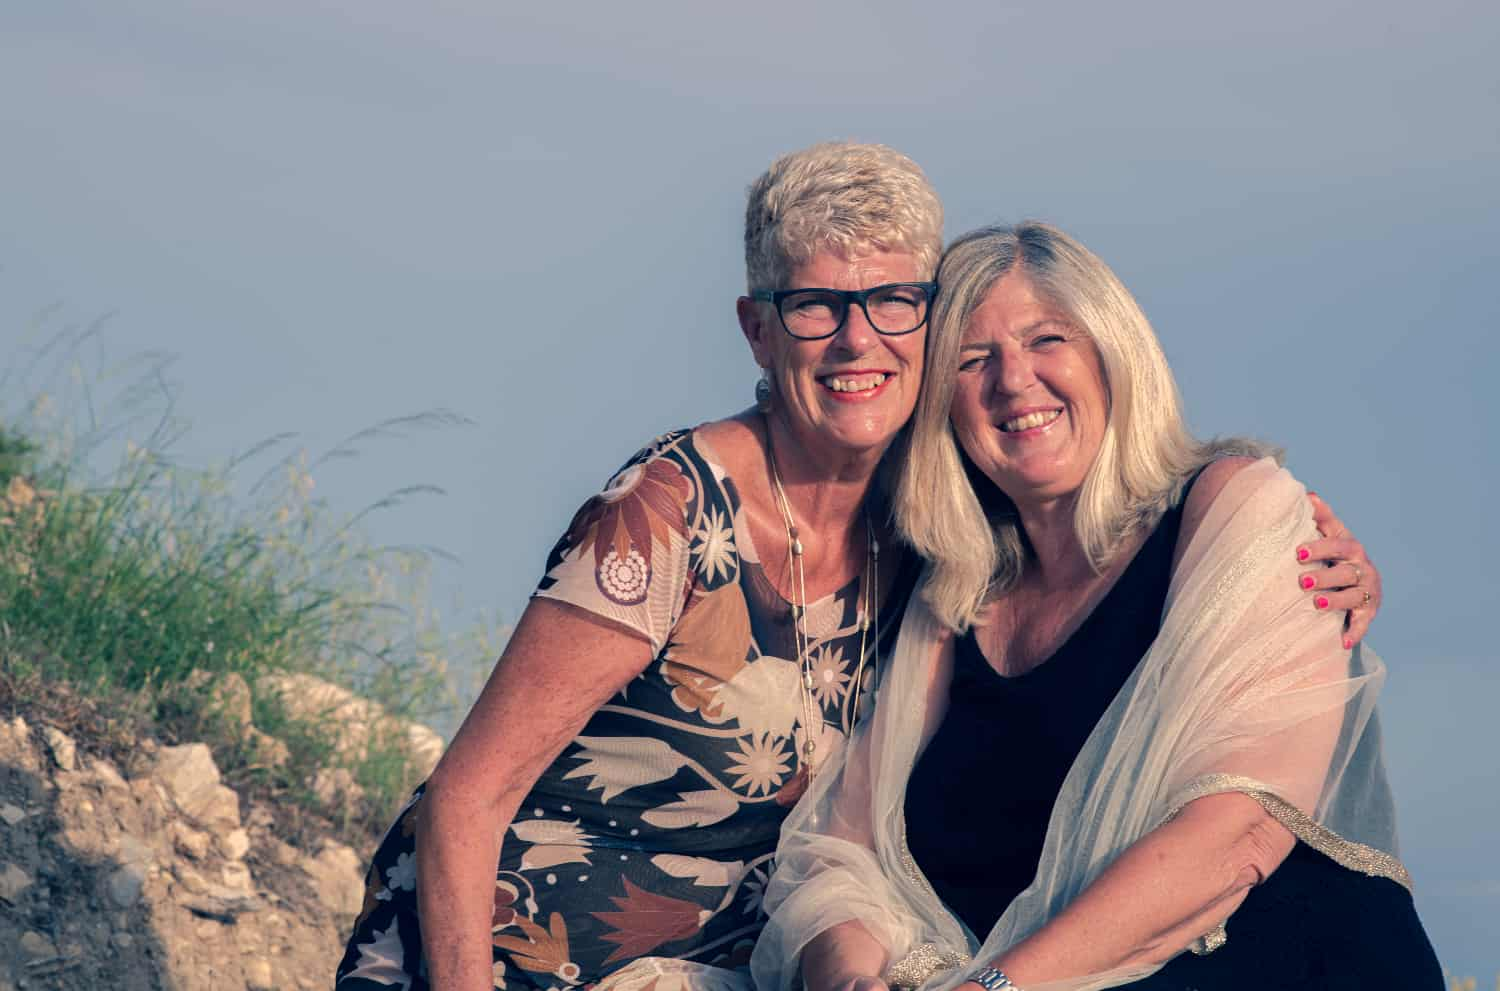 Left to right: Sue Wilson and Debbie Williams, who live in Spain.